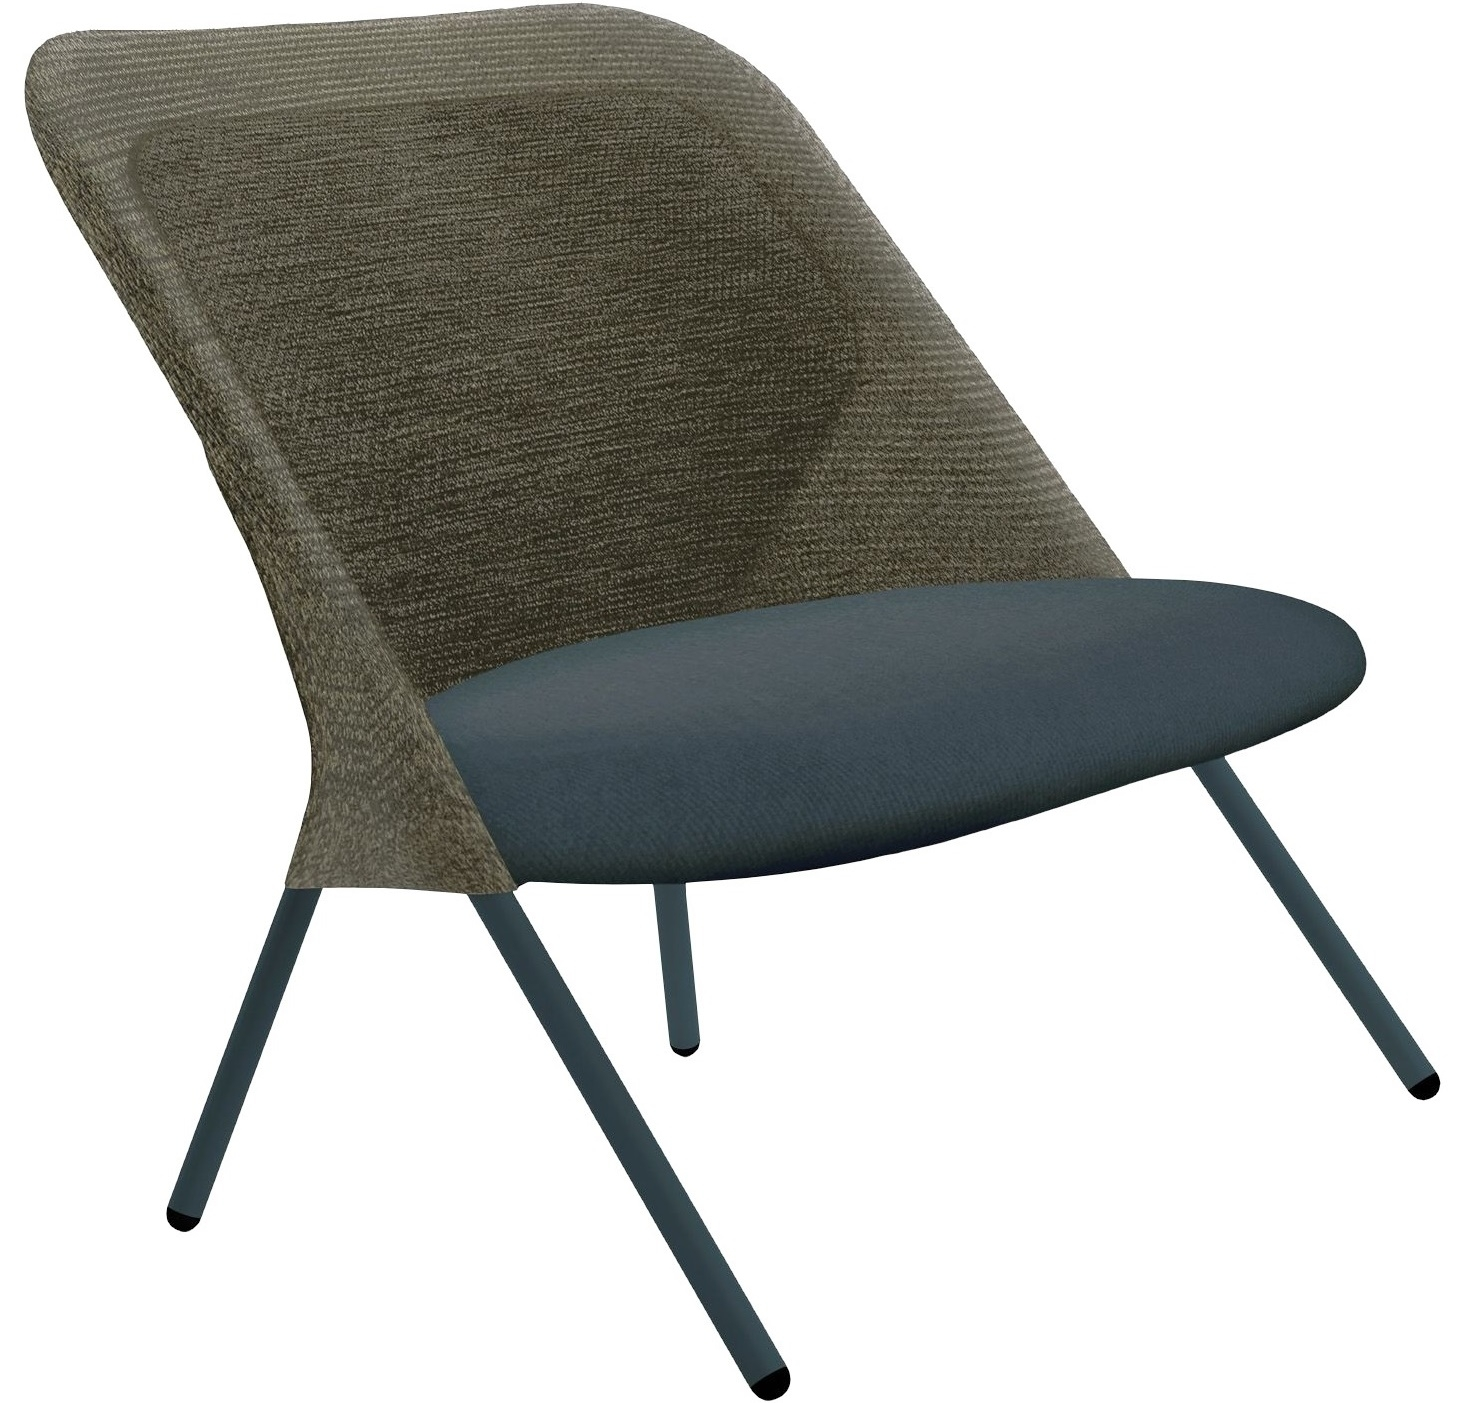 Chair Sessel Shift Lounge Chair Sessel Moooi